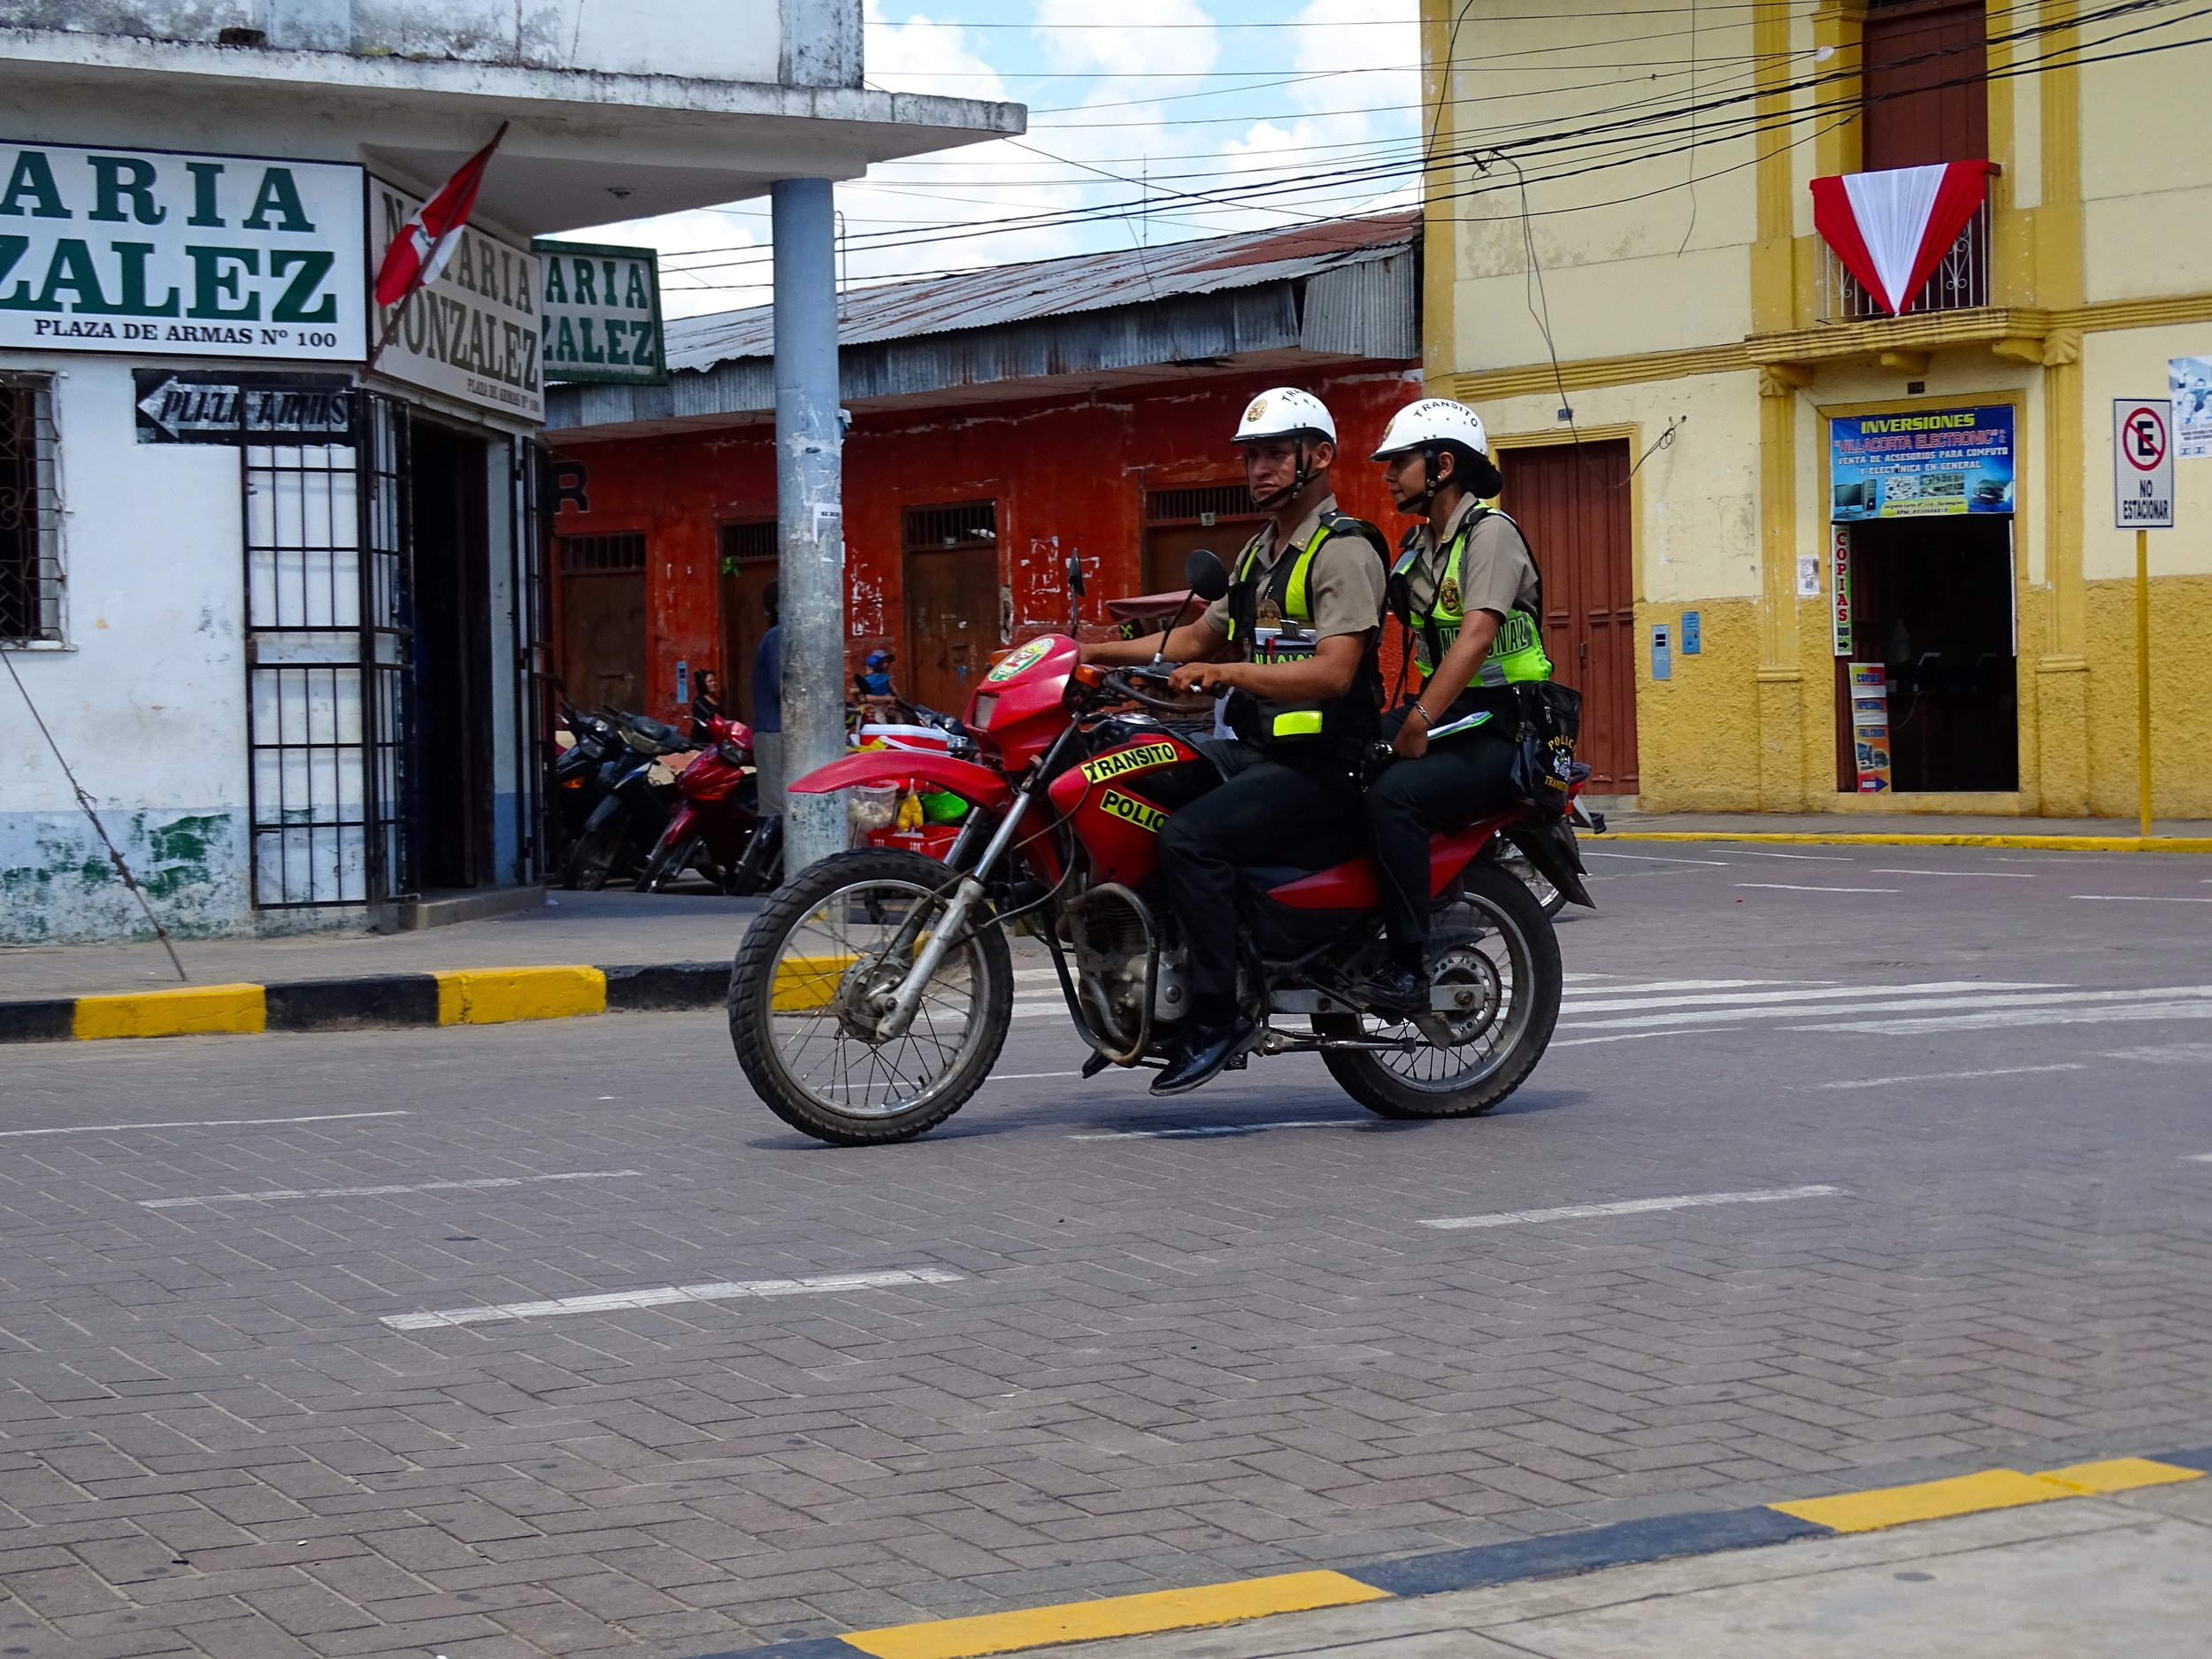 The local policia detail all ride dual-sport 250s.  Though not shown here, most are on Honda 250 Tornados, really great bikes.